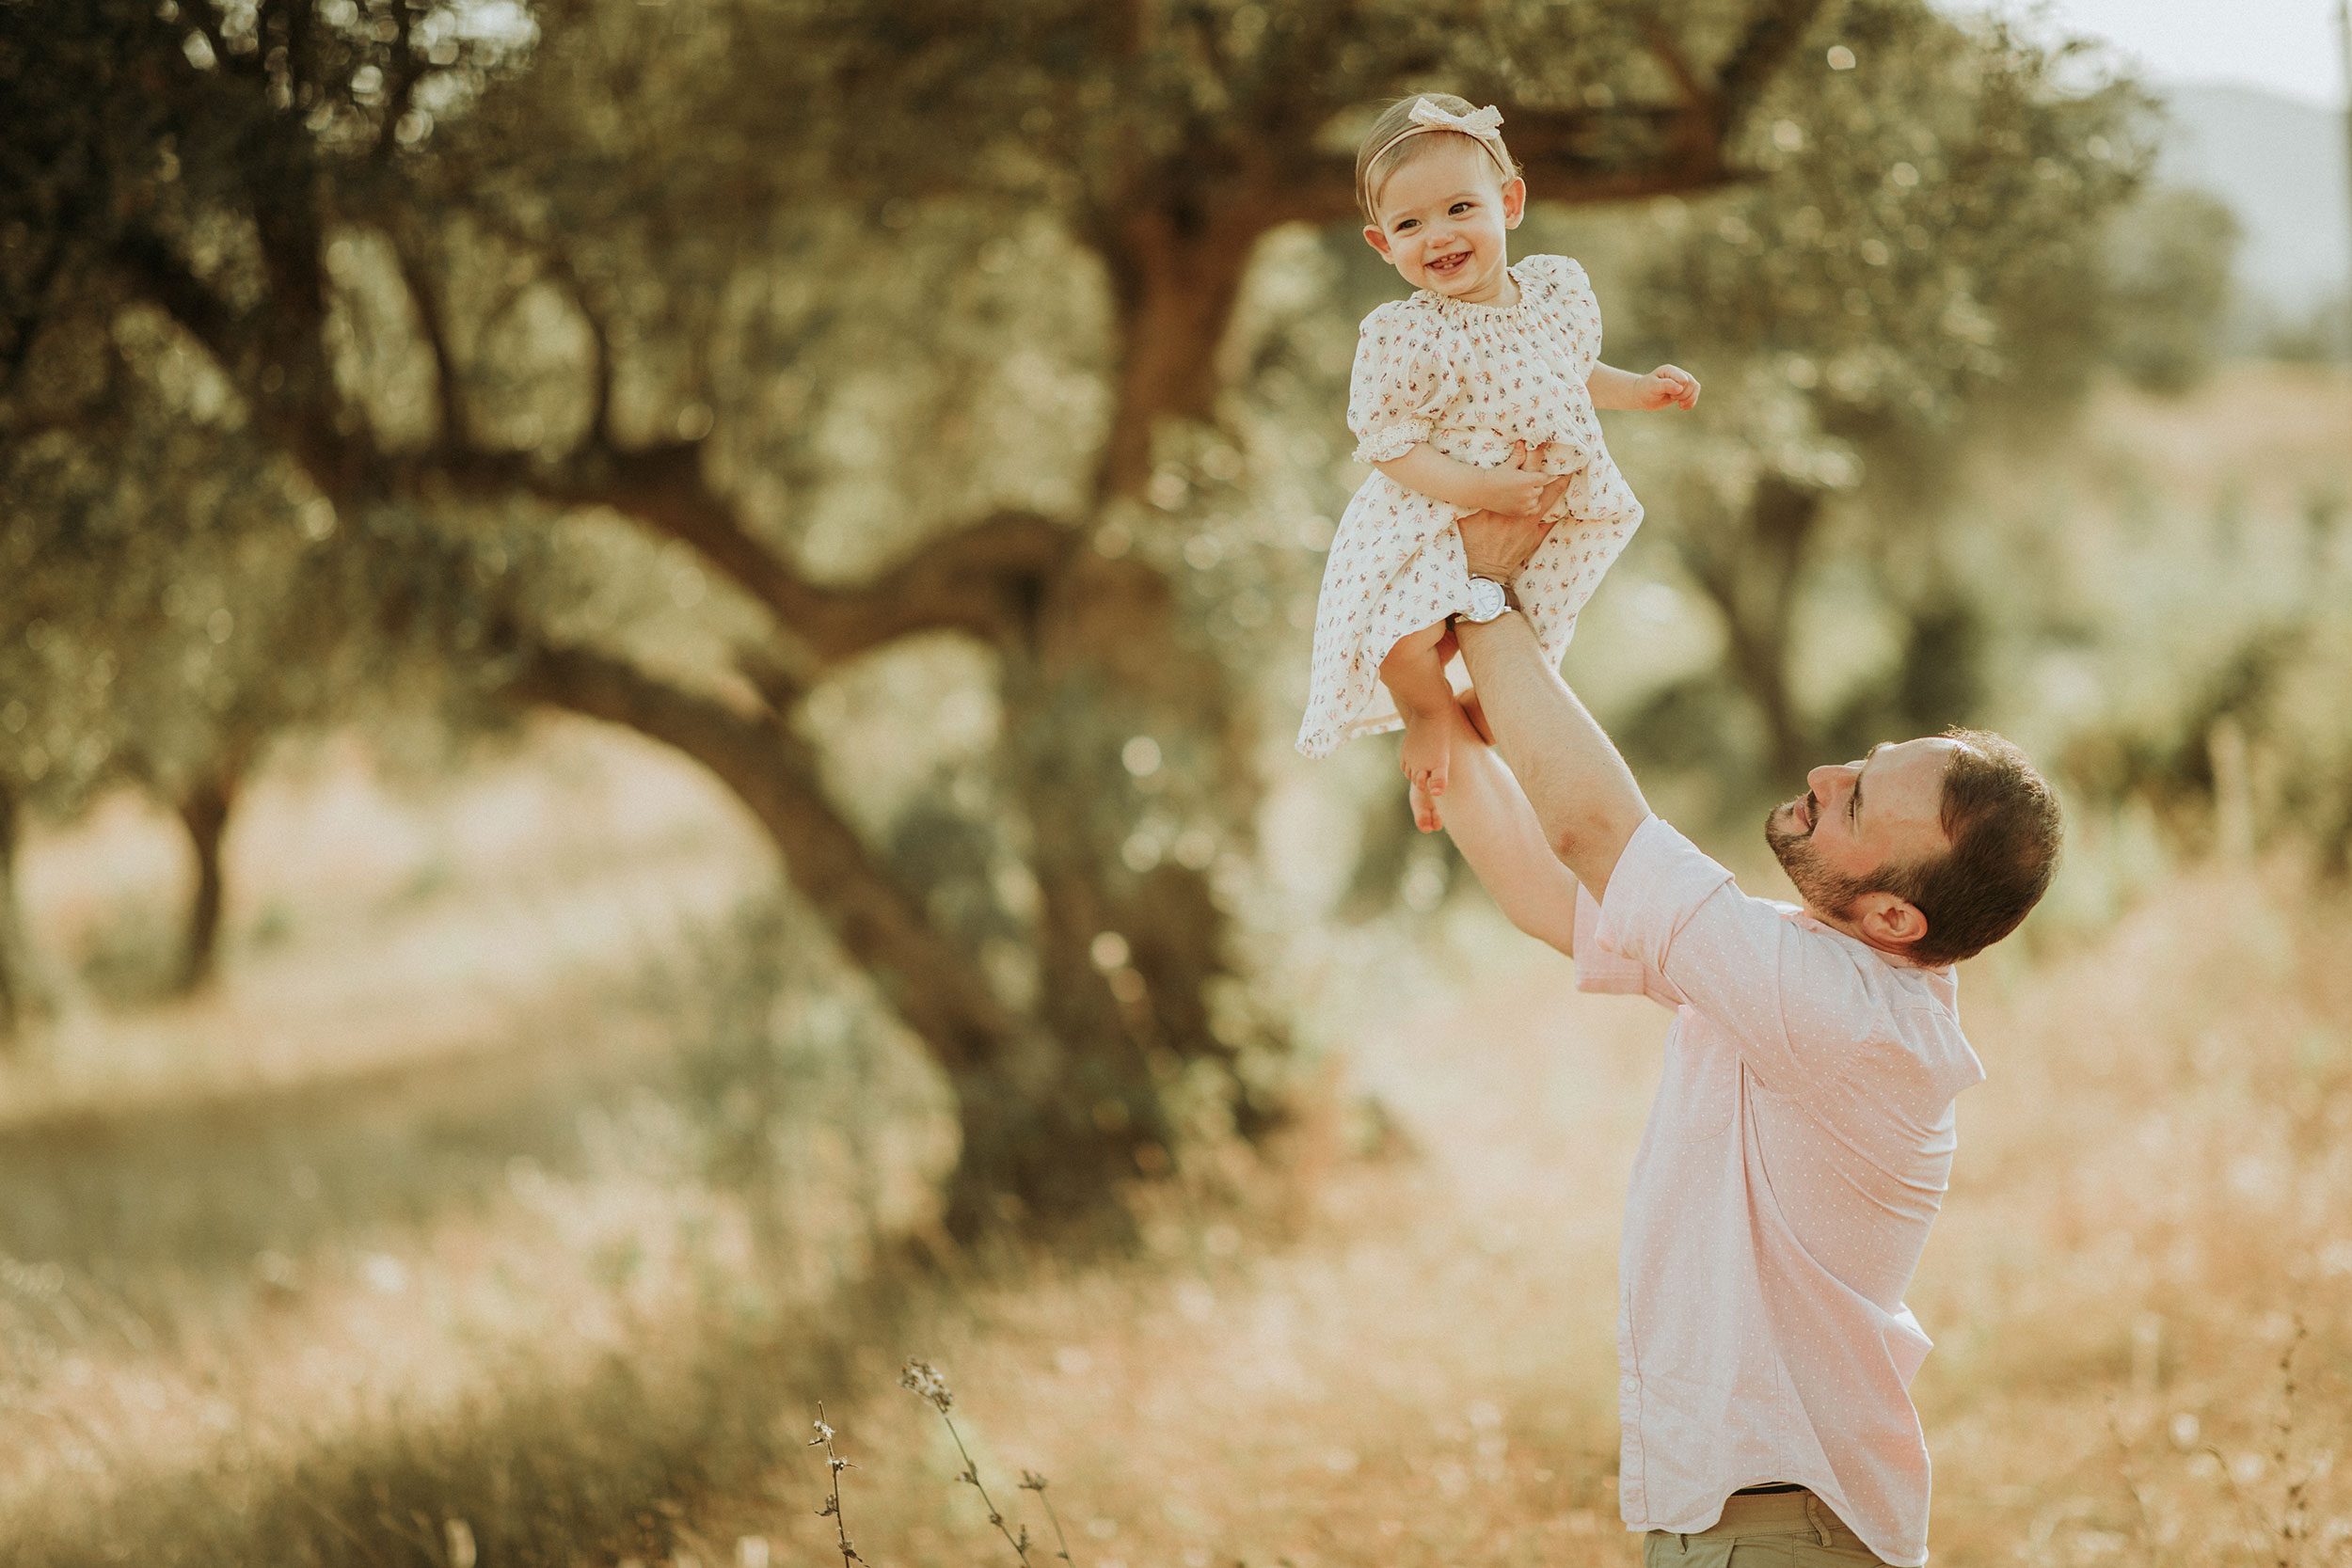 The father lifting his daughter up